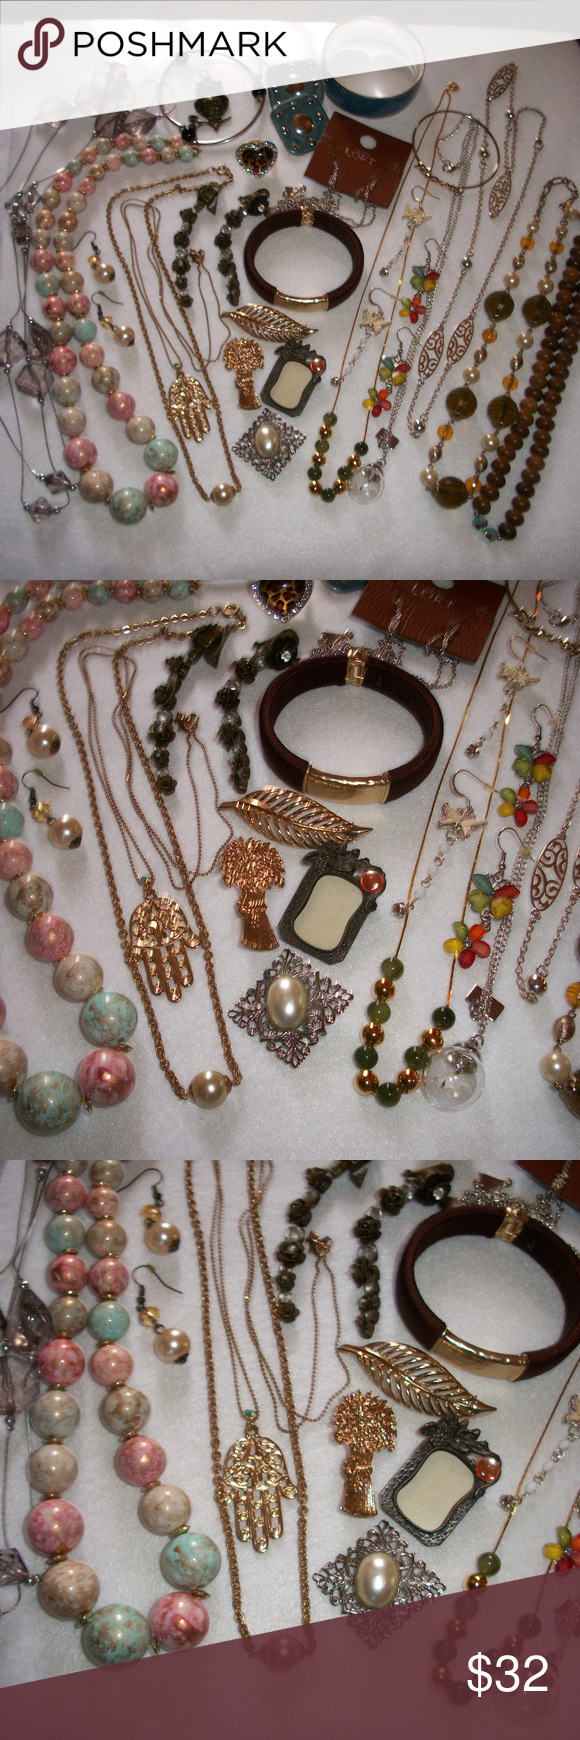 36++ Where to sell used costume jewelry ideas in 2021